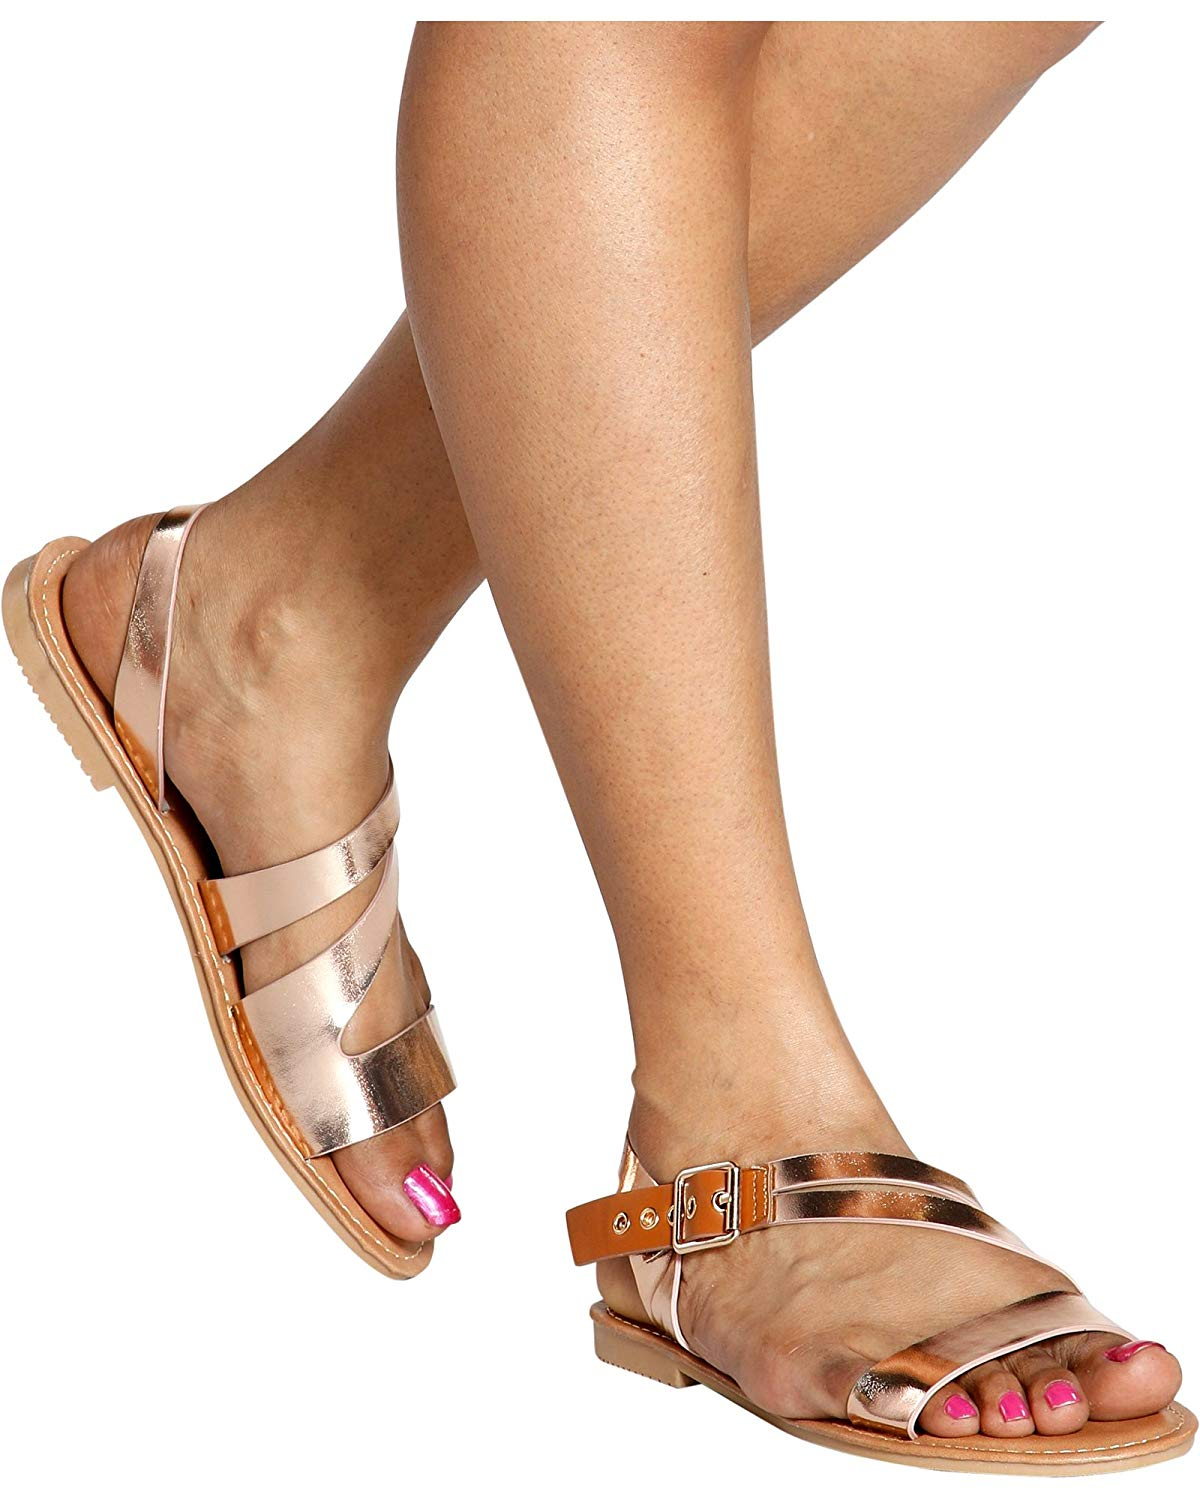 feee354858aa Get Quotations · Jessica Carlyle Women s Casual Open Toe Strappy Gladiator Ankle  Strap Flat Sandals